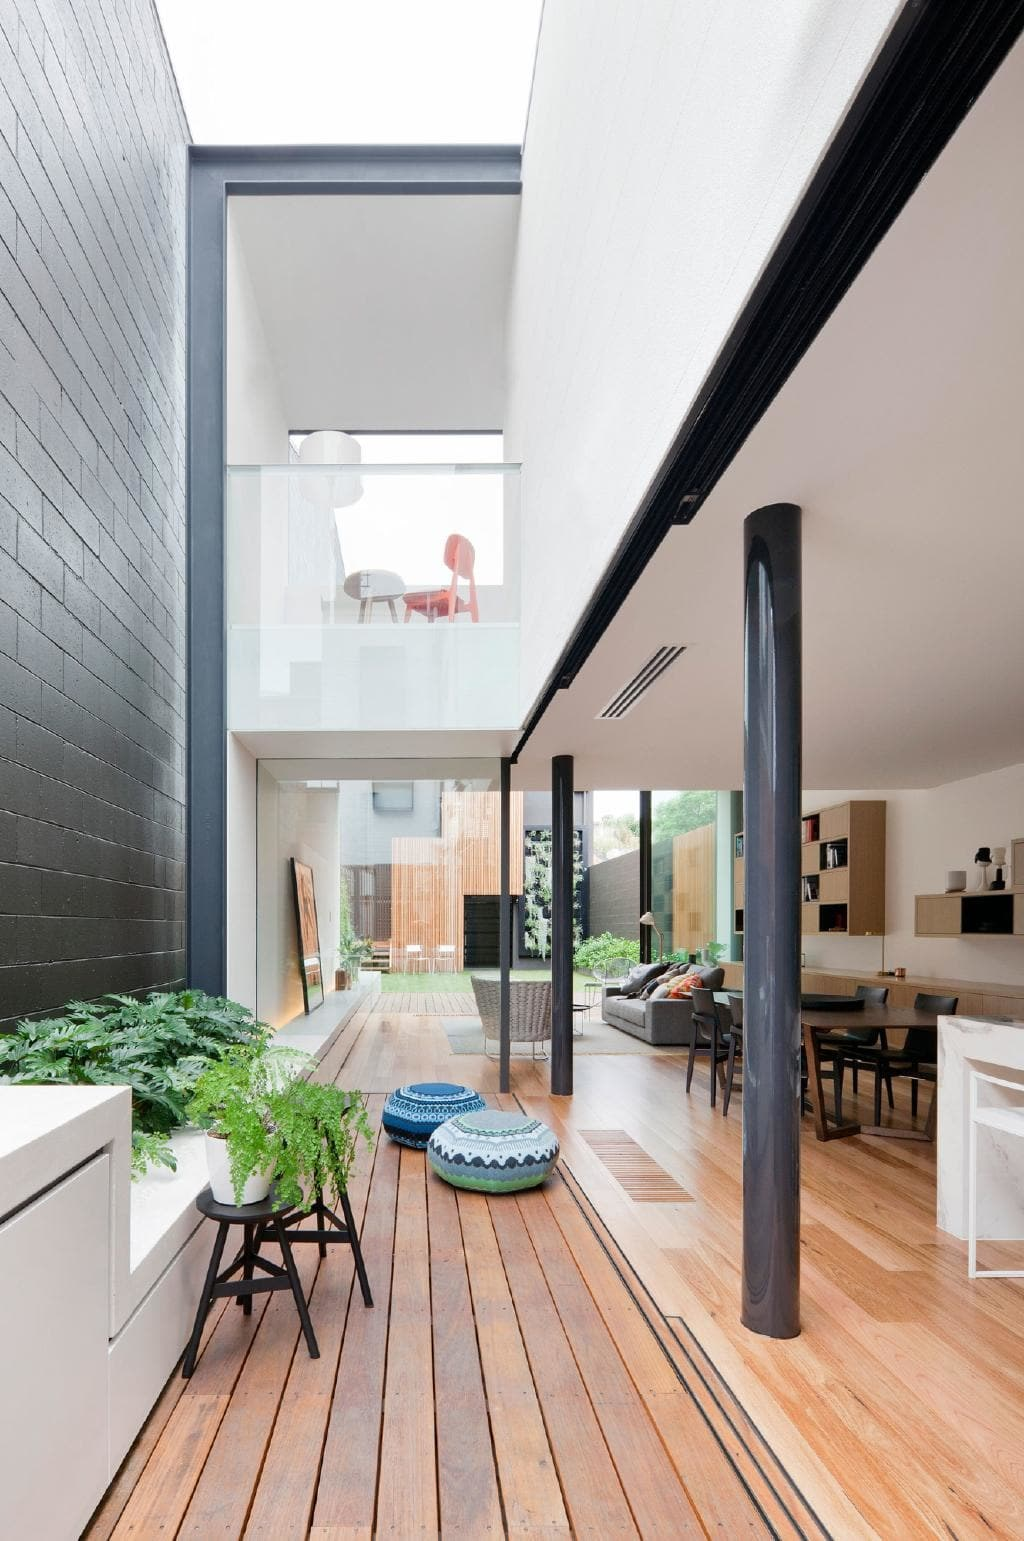 """Terrace homes are notorious for their lack of natural sunlight, but you'd never know it looking at this [standout family home](https://www.homestolove.com.au/internal-courtyard-ideas-to-light-up-your-home-18778